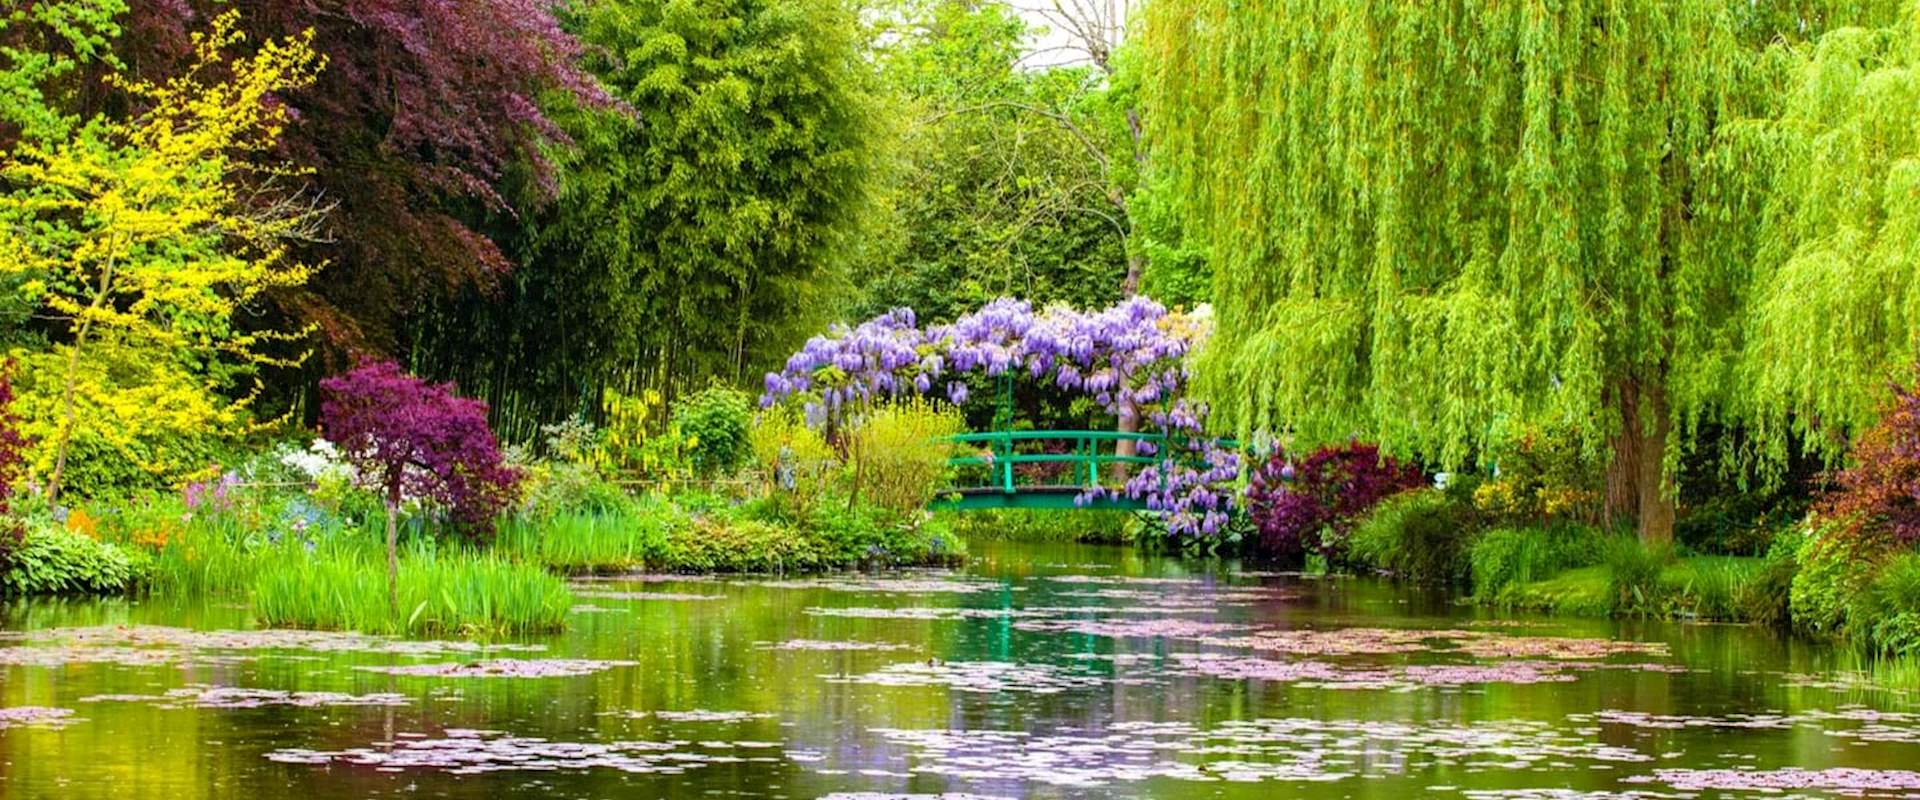 Full Day Monets Giverny & Versailles Palace Paris Tour - City Wonders